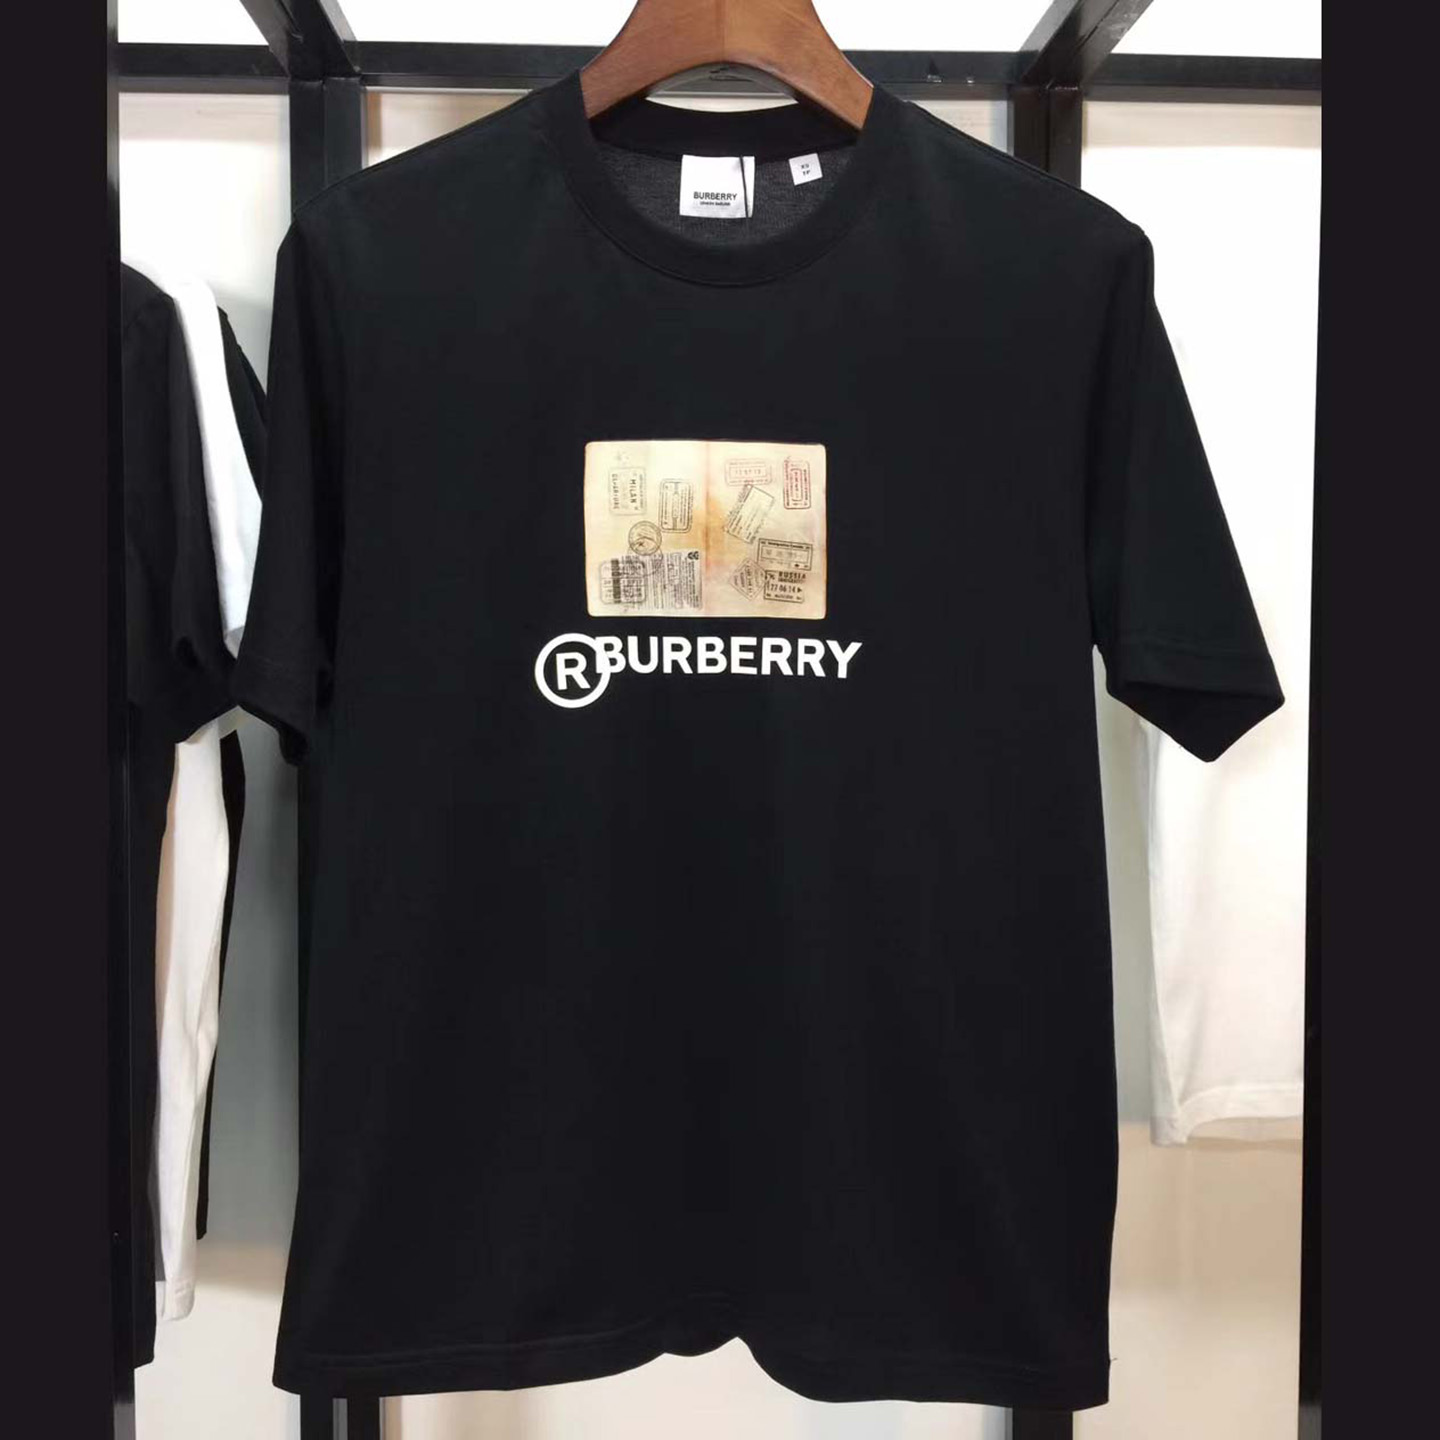 Burberry Print Cotton T-shirt Black - FashionBeast